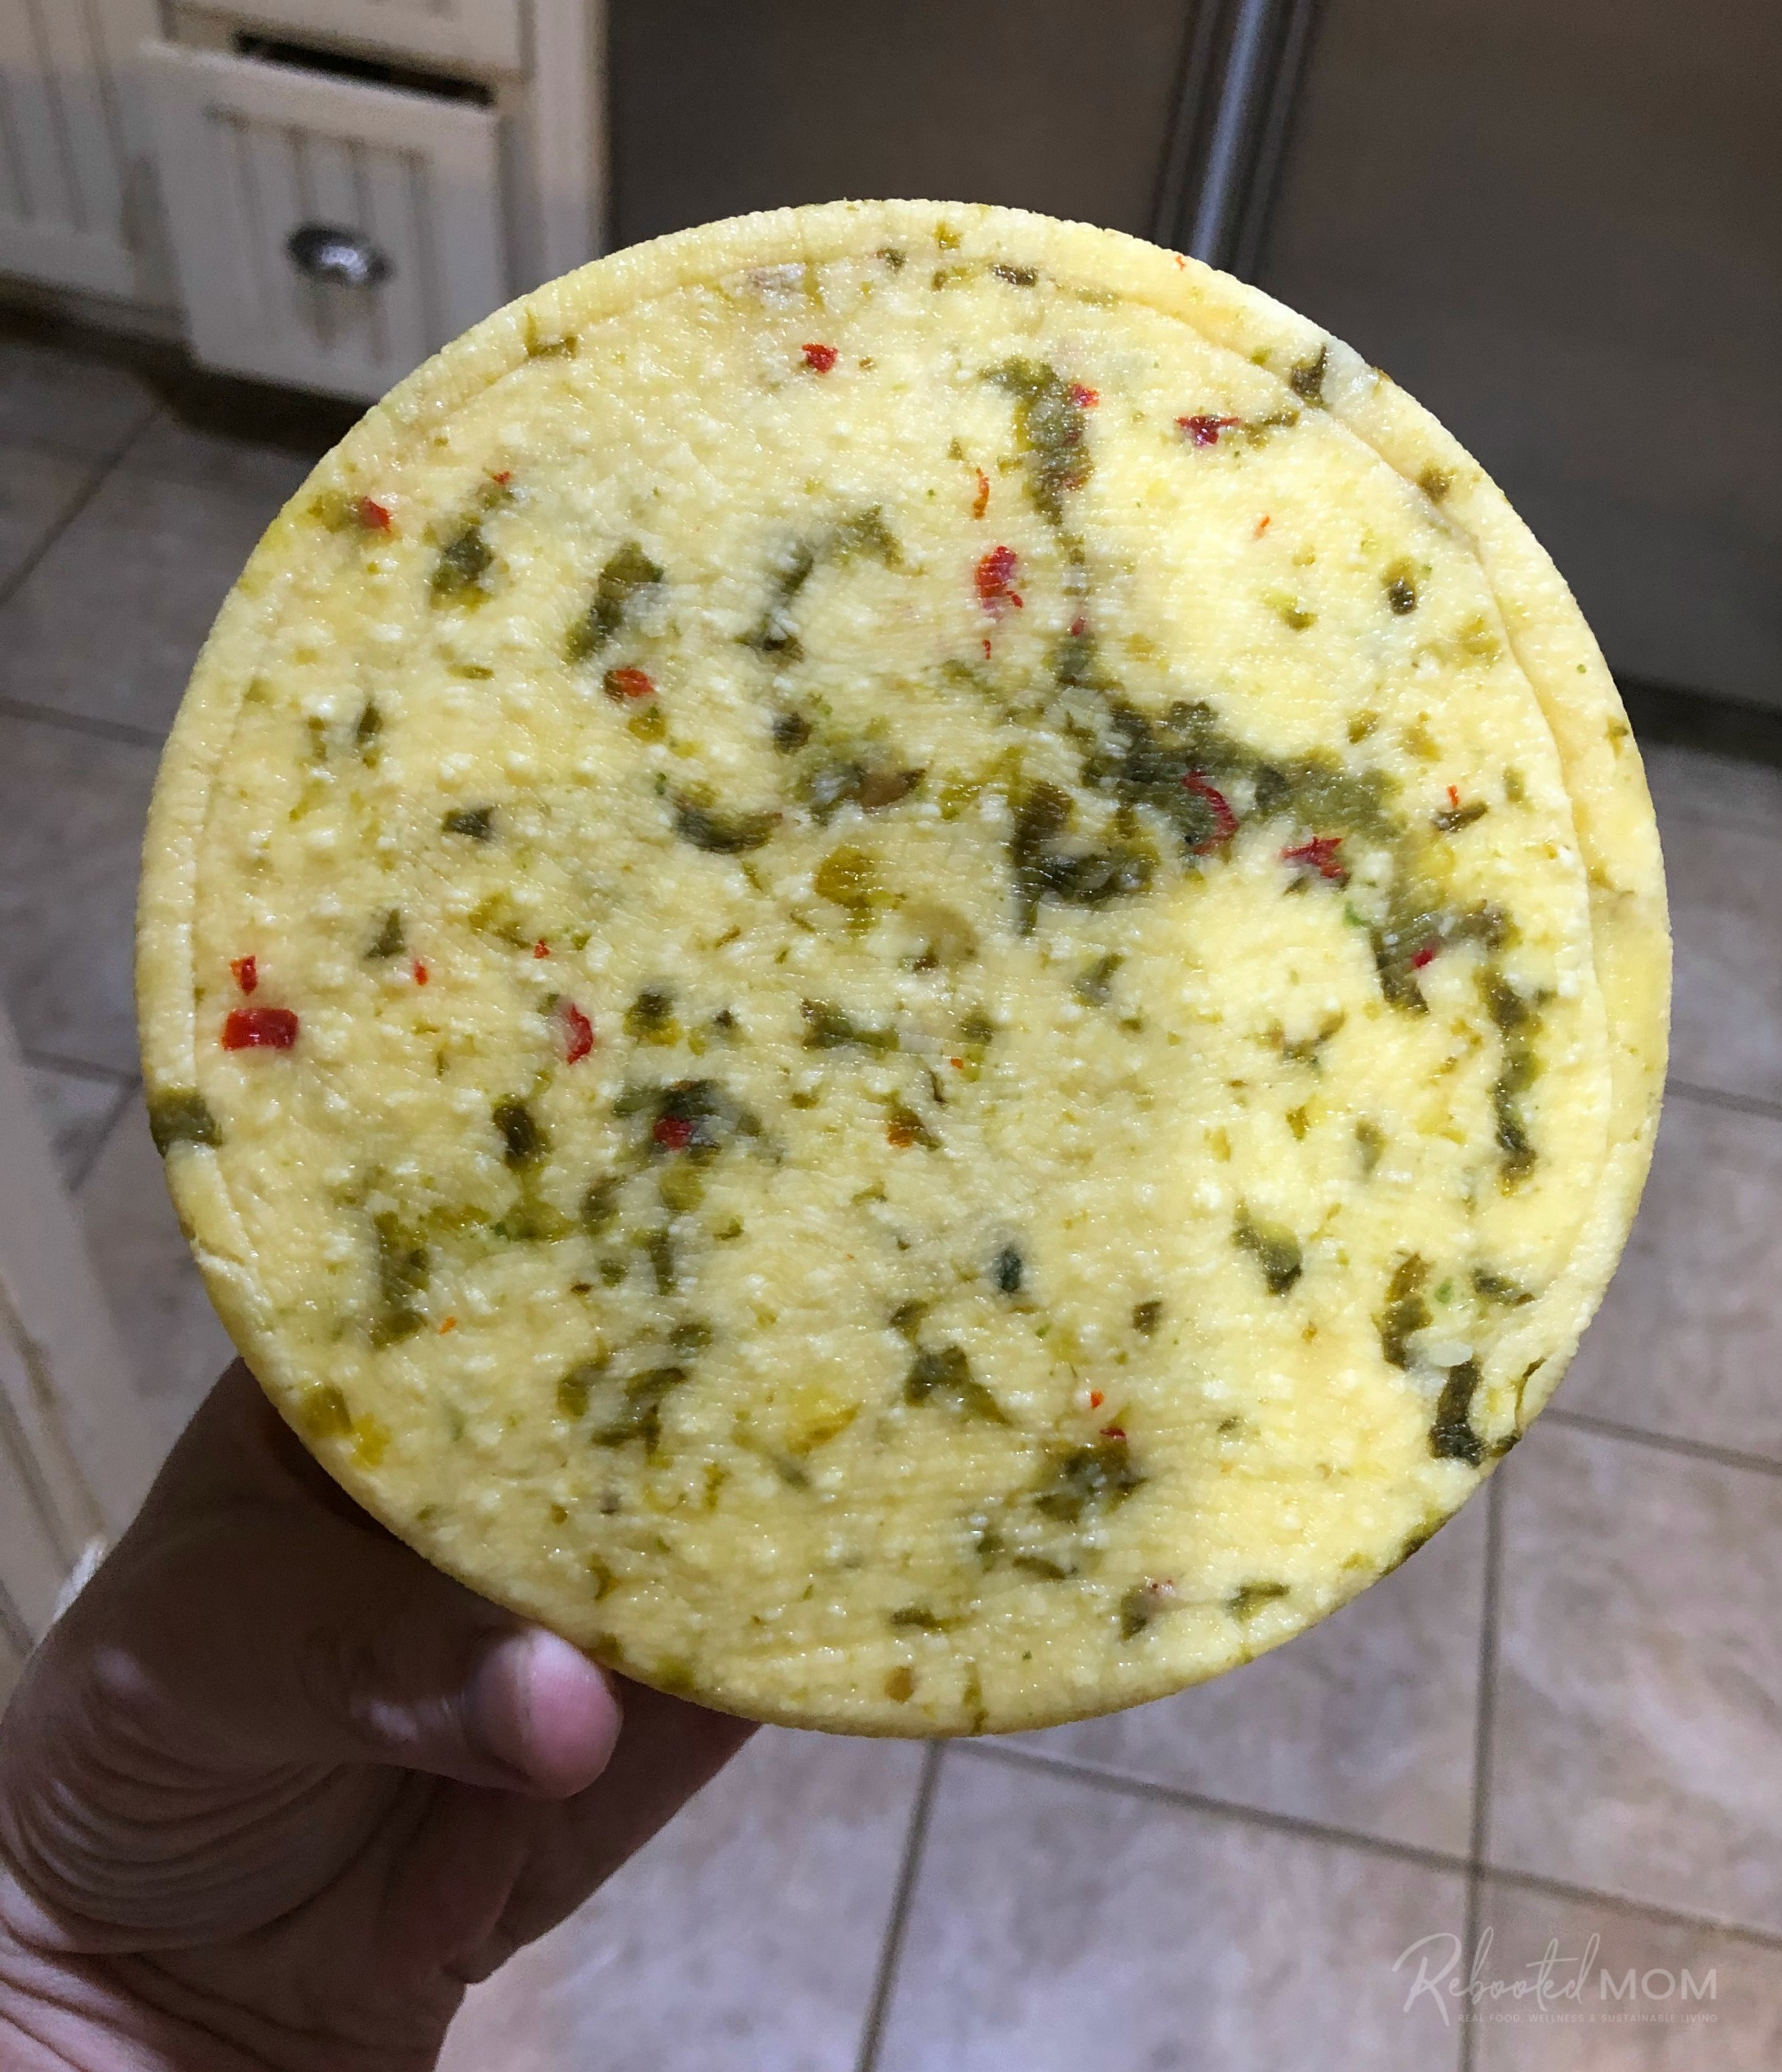 Hatch chile cheddar cheese after pressing at 50 lbs for 12 hours